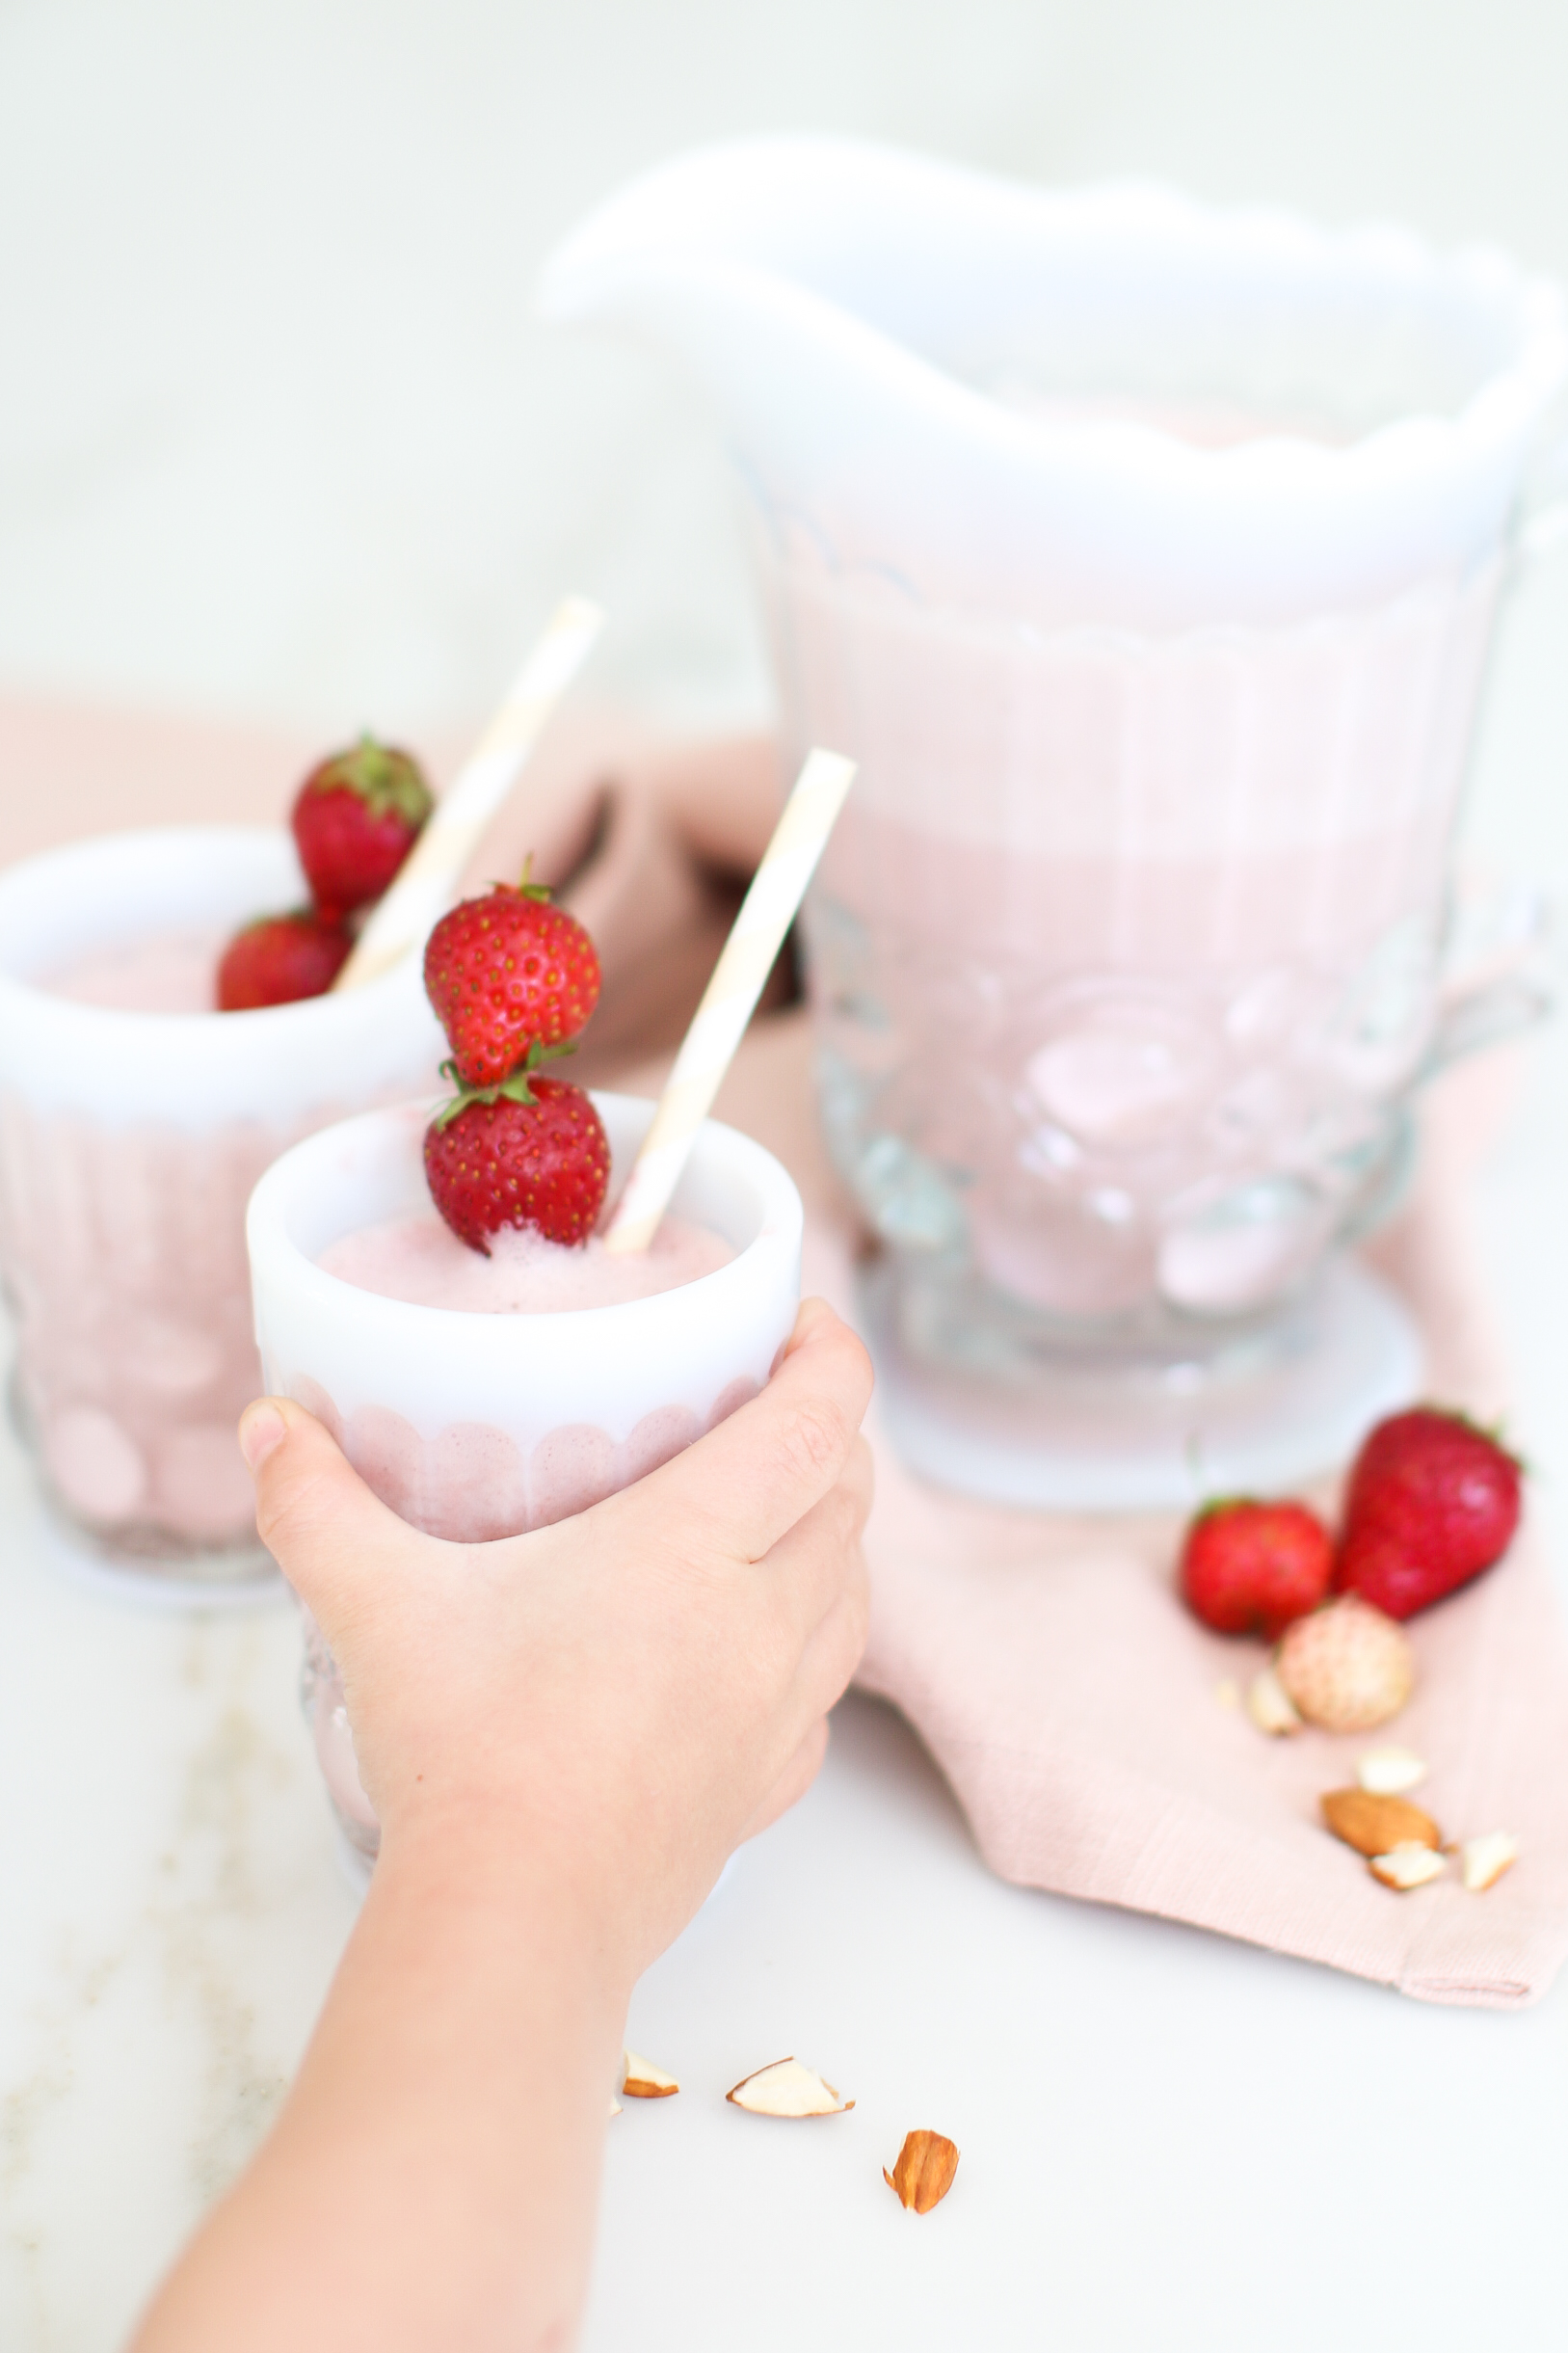 Roasted Strawberry Almond Milk Recipe DIY Monika Hibbs